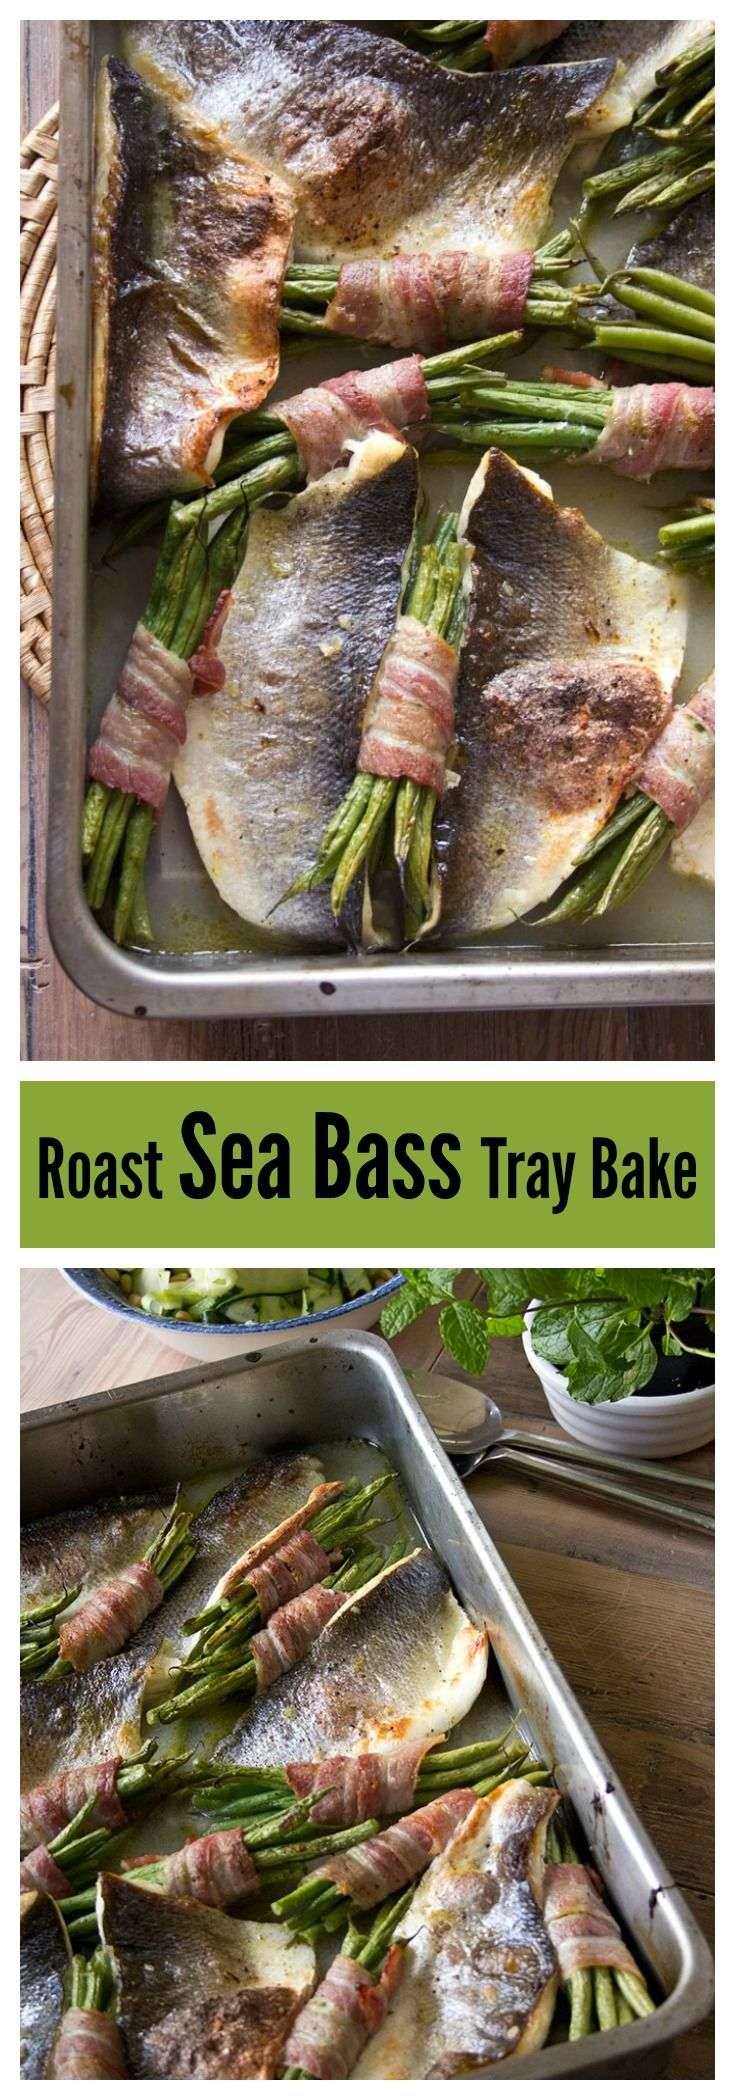 Get some Omega 3 in you with this quick, light and impressive-looking dish. Roast sea bass traybake with bacon-wrapped beans, guys!